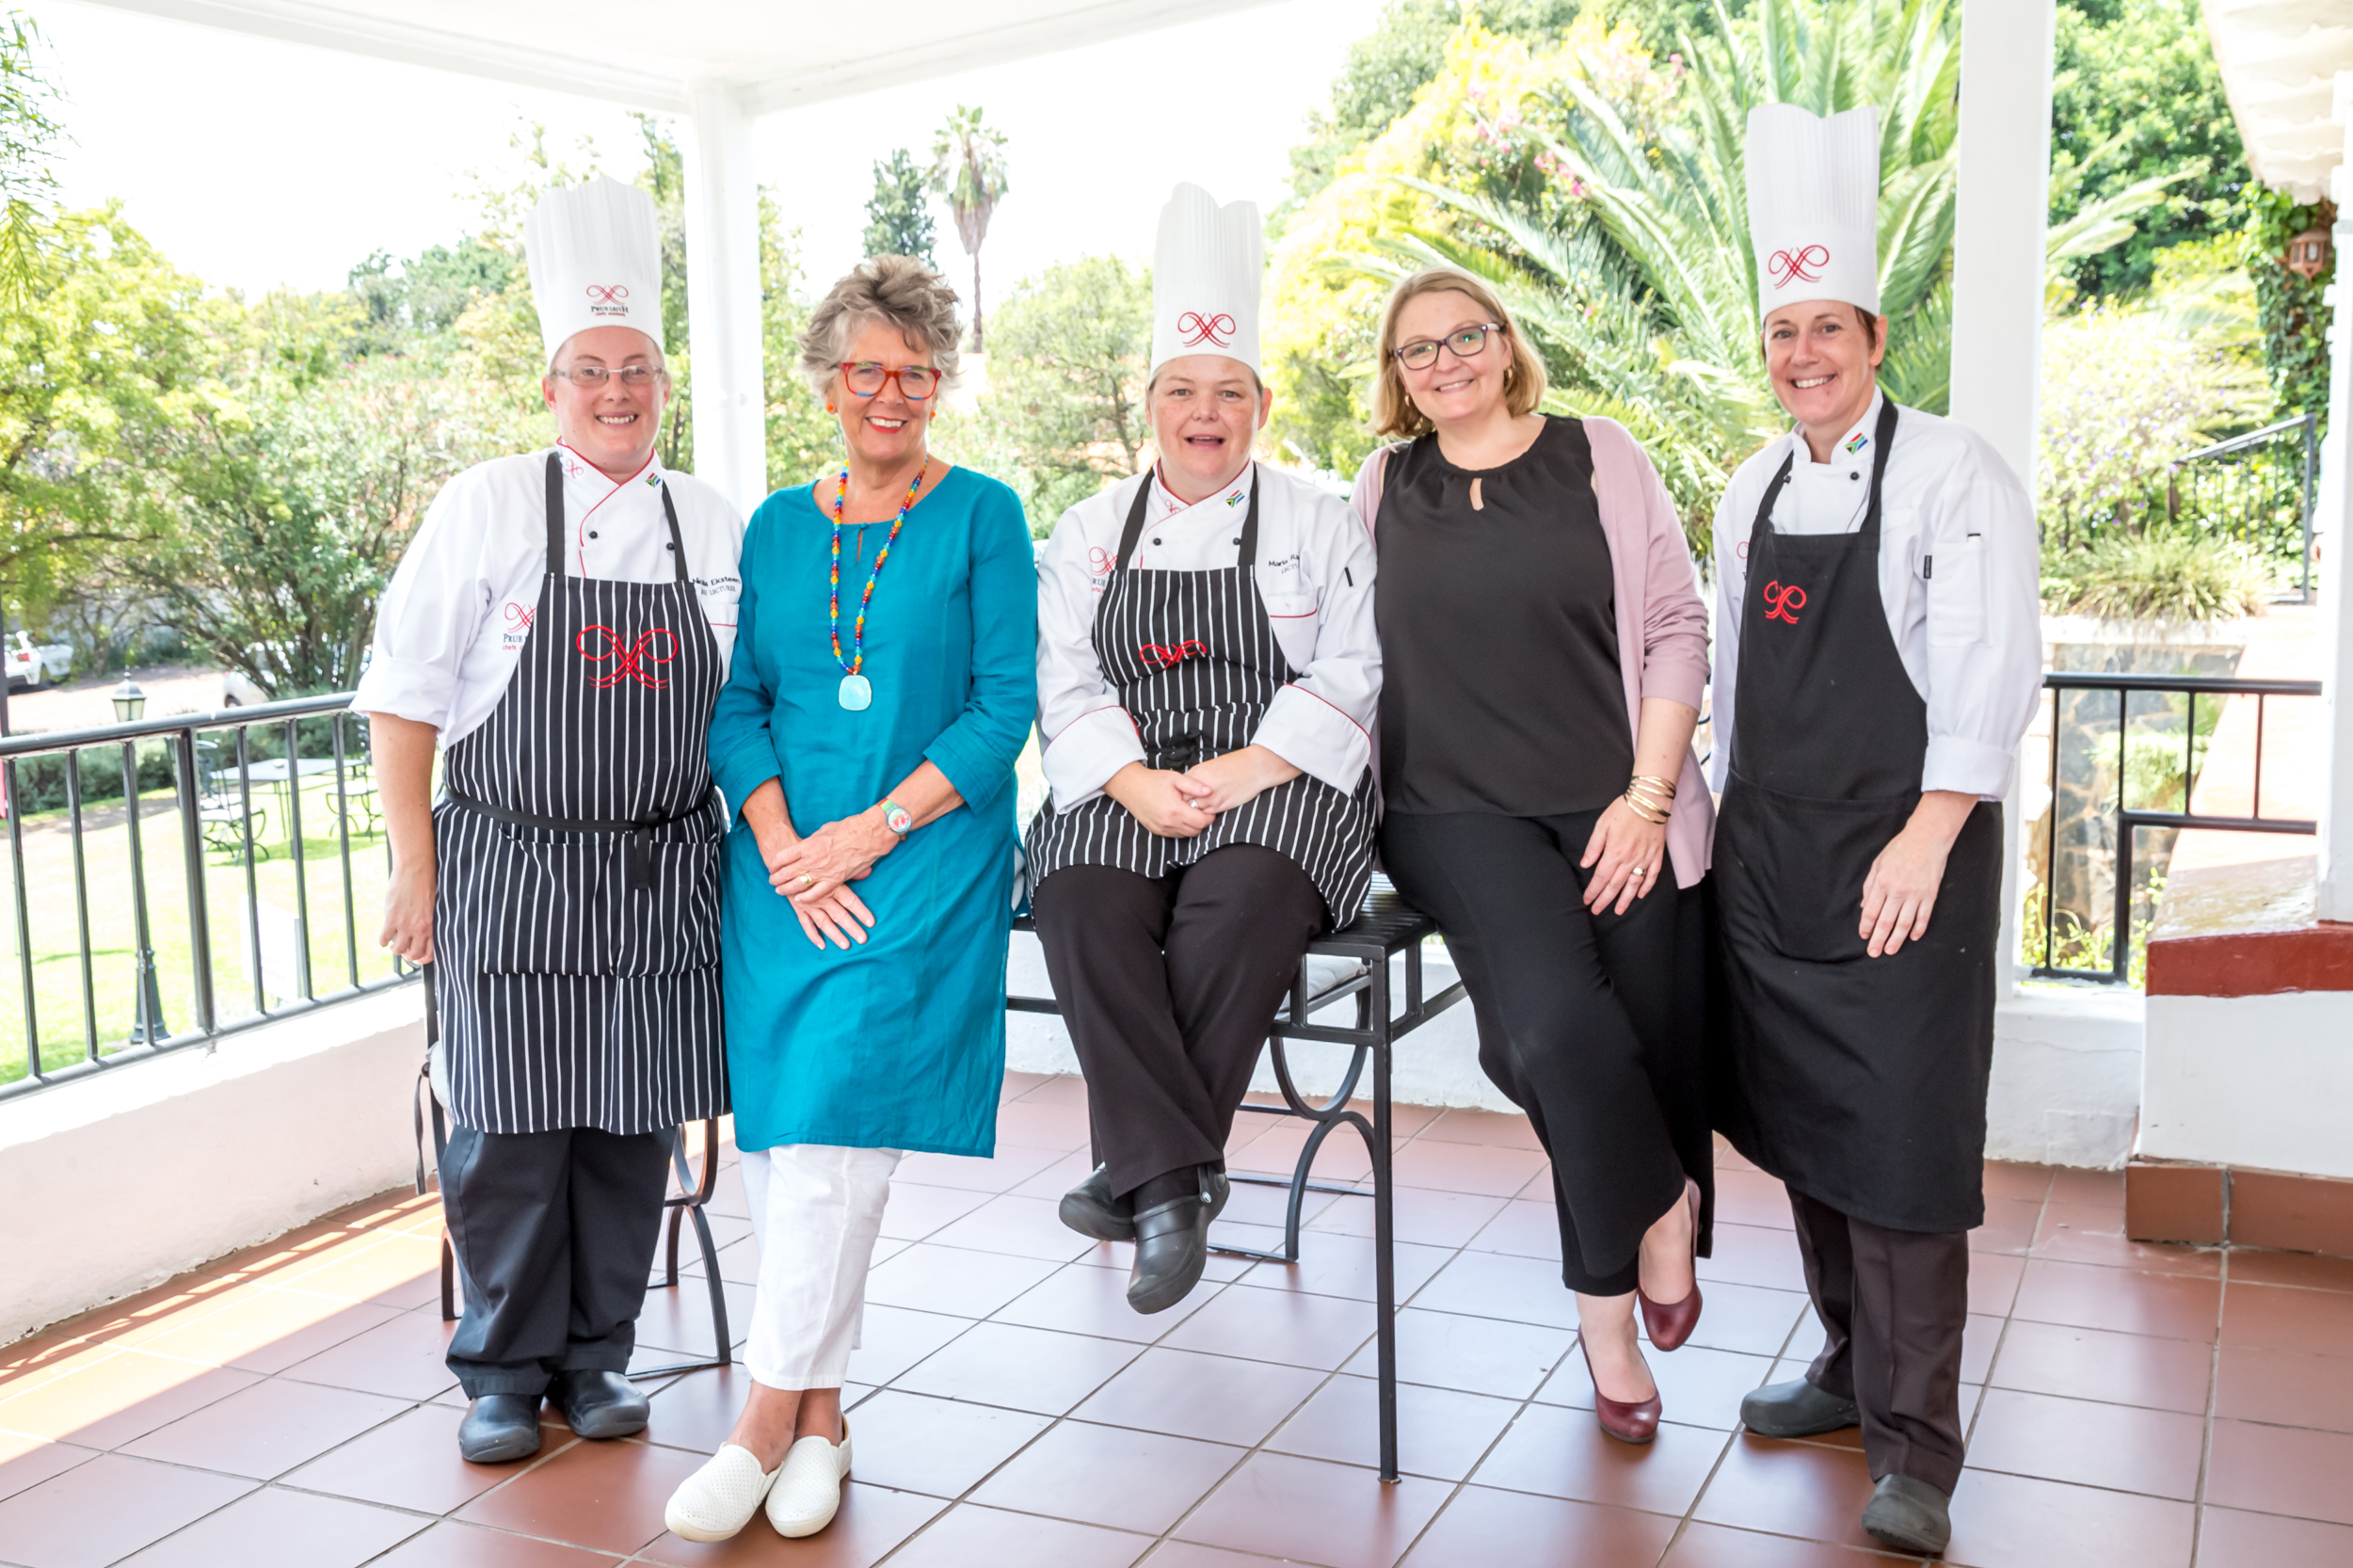 Prue with the Prue Leith staff